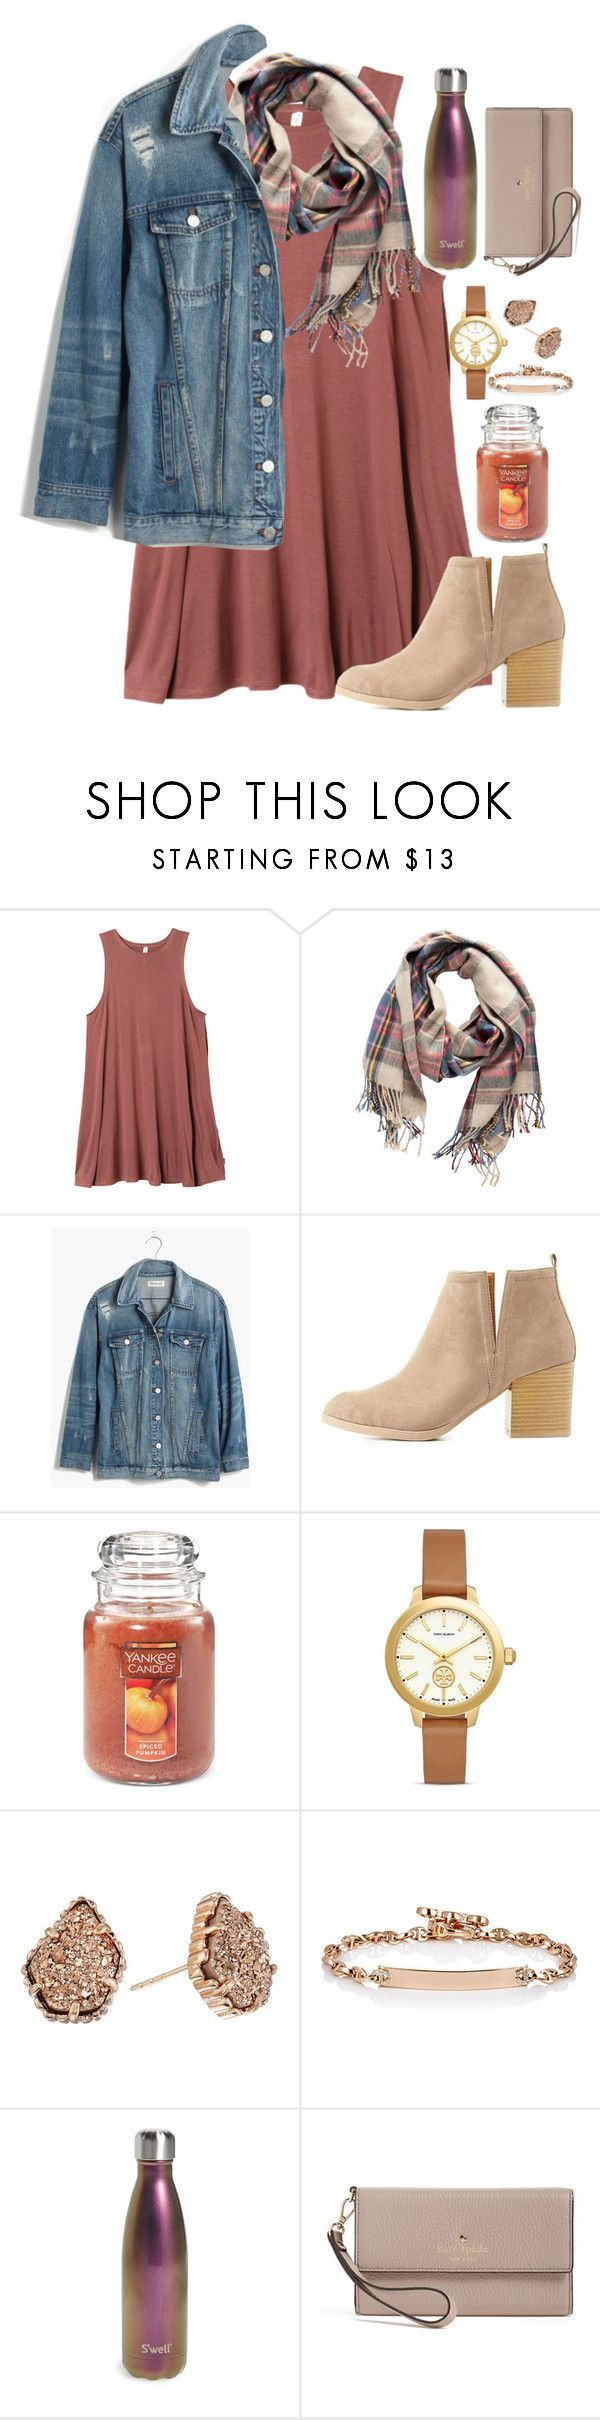 featuring RVCA, Pieces, Madewell, Charlotte Russe, Yankee Candle, Tory Burch, Ke...